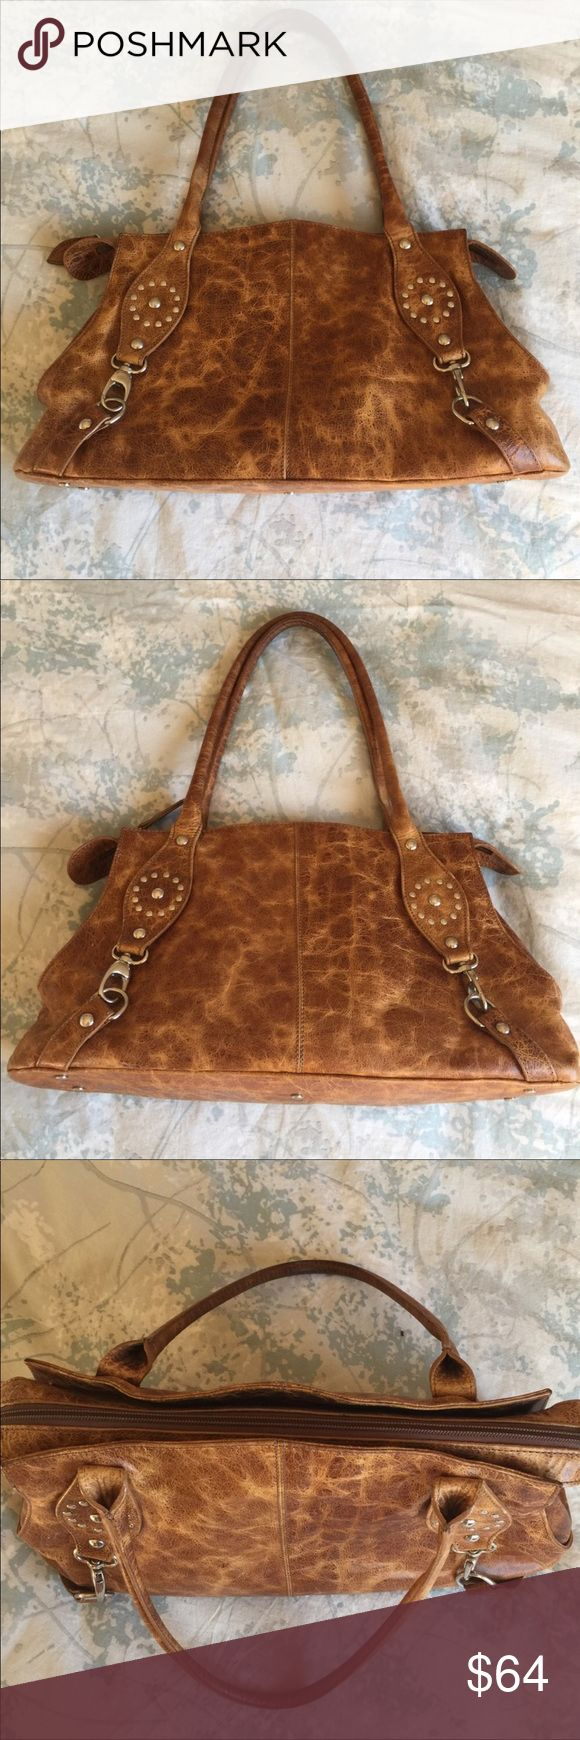 """Roberta Gandolfi Italian brown leather handbag Roberta Gandolfi Italian brown leather handbag.  Gorgeous handbag in distressed medium tone brown leather with silver detail design.  Silver feet on the bottom this protect the bag, nice medium size and vey versatile.  Wear hand held or over the shoulder, top zipper closure.  EUC Measurements approximately 17"""" long 9.5 height 4"""" depth. 9"""" handle drop. Minimal wear on the inside and out. Inside - one zipper pocket and two small pocket. Roberta…"""